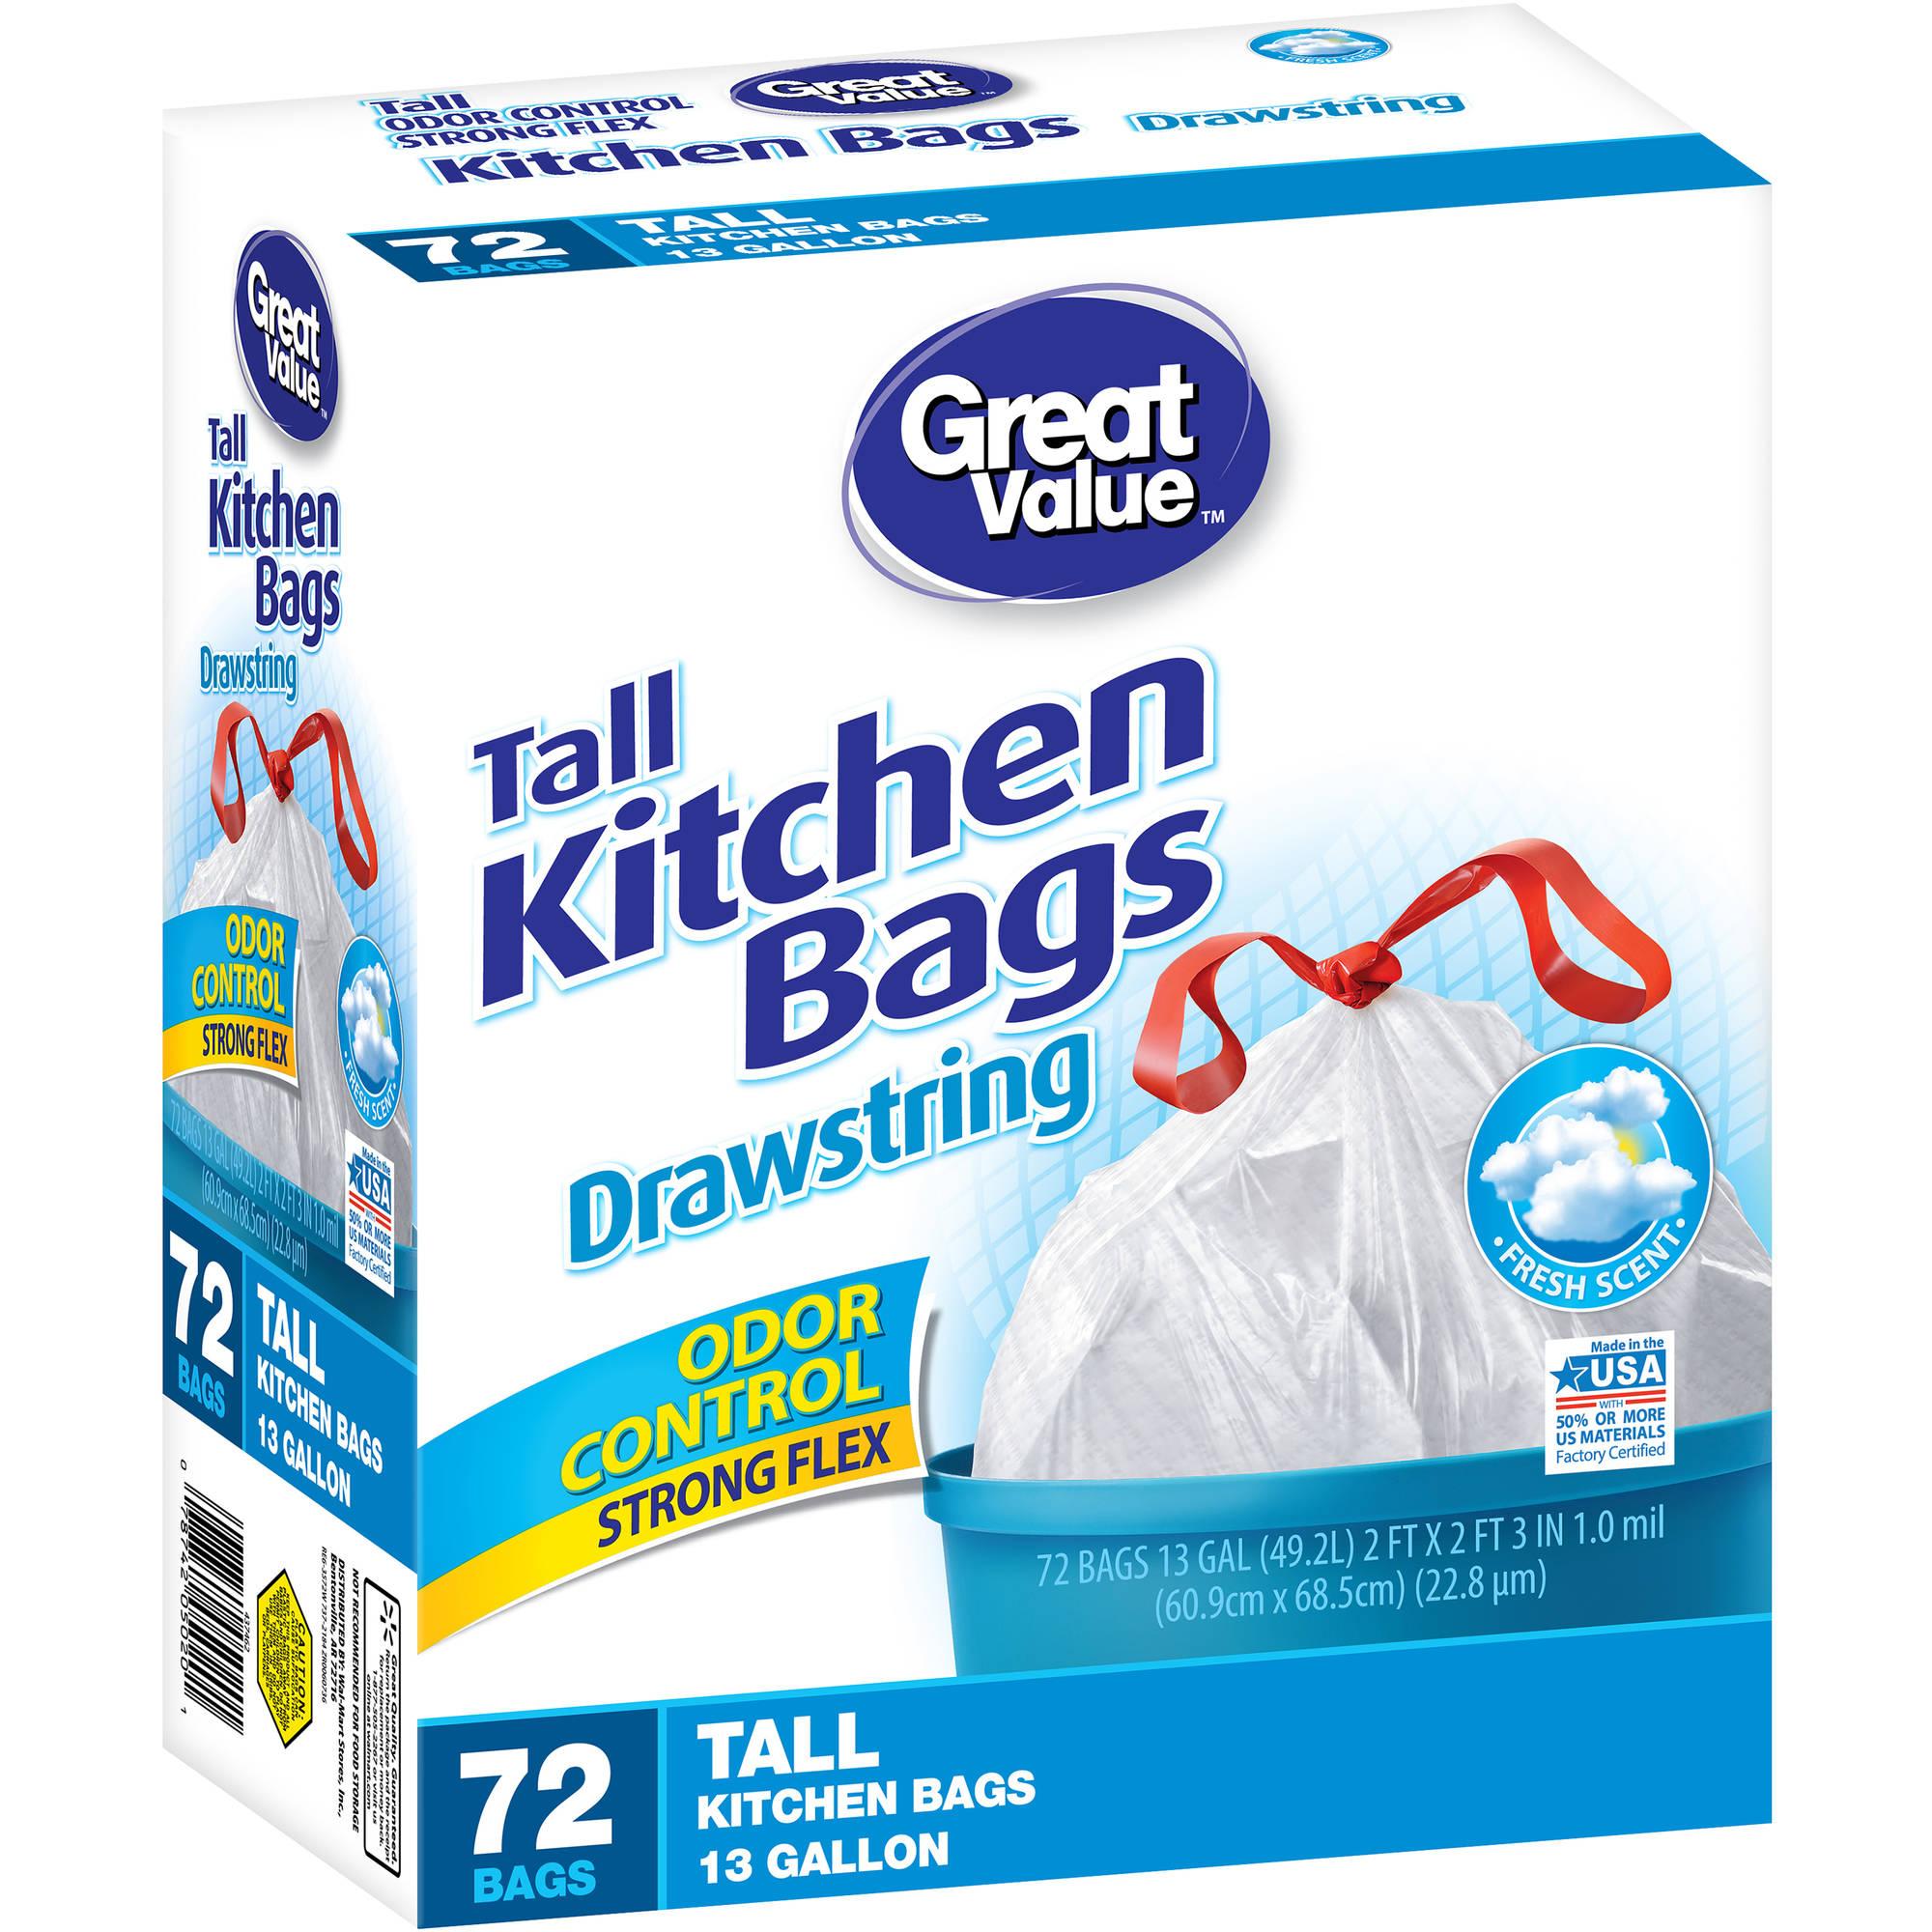 Great Value Fresh Scent Drawstring Tall Kitchen Bags, 13 gallon, 72 count